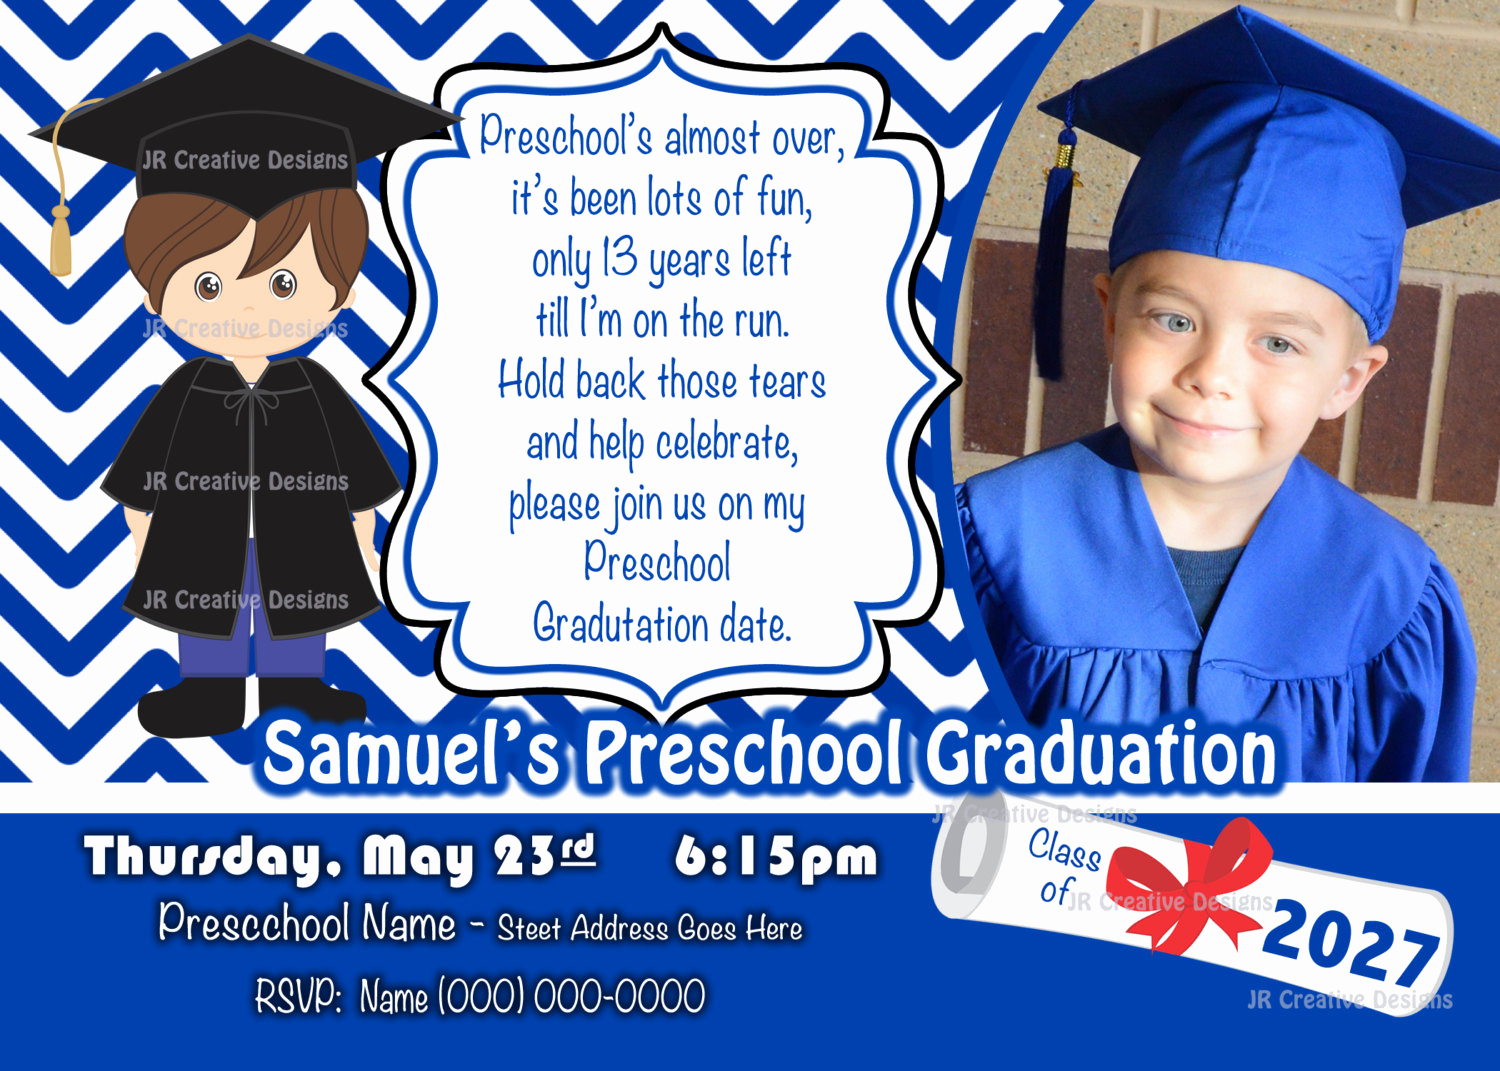 Kindergarten Graduation Invitation Template Beautiful Preschool Graduation Invitation Kindergarten Graduation